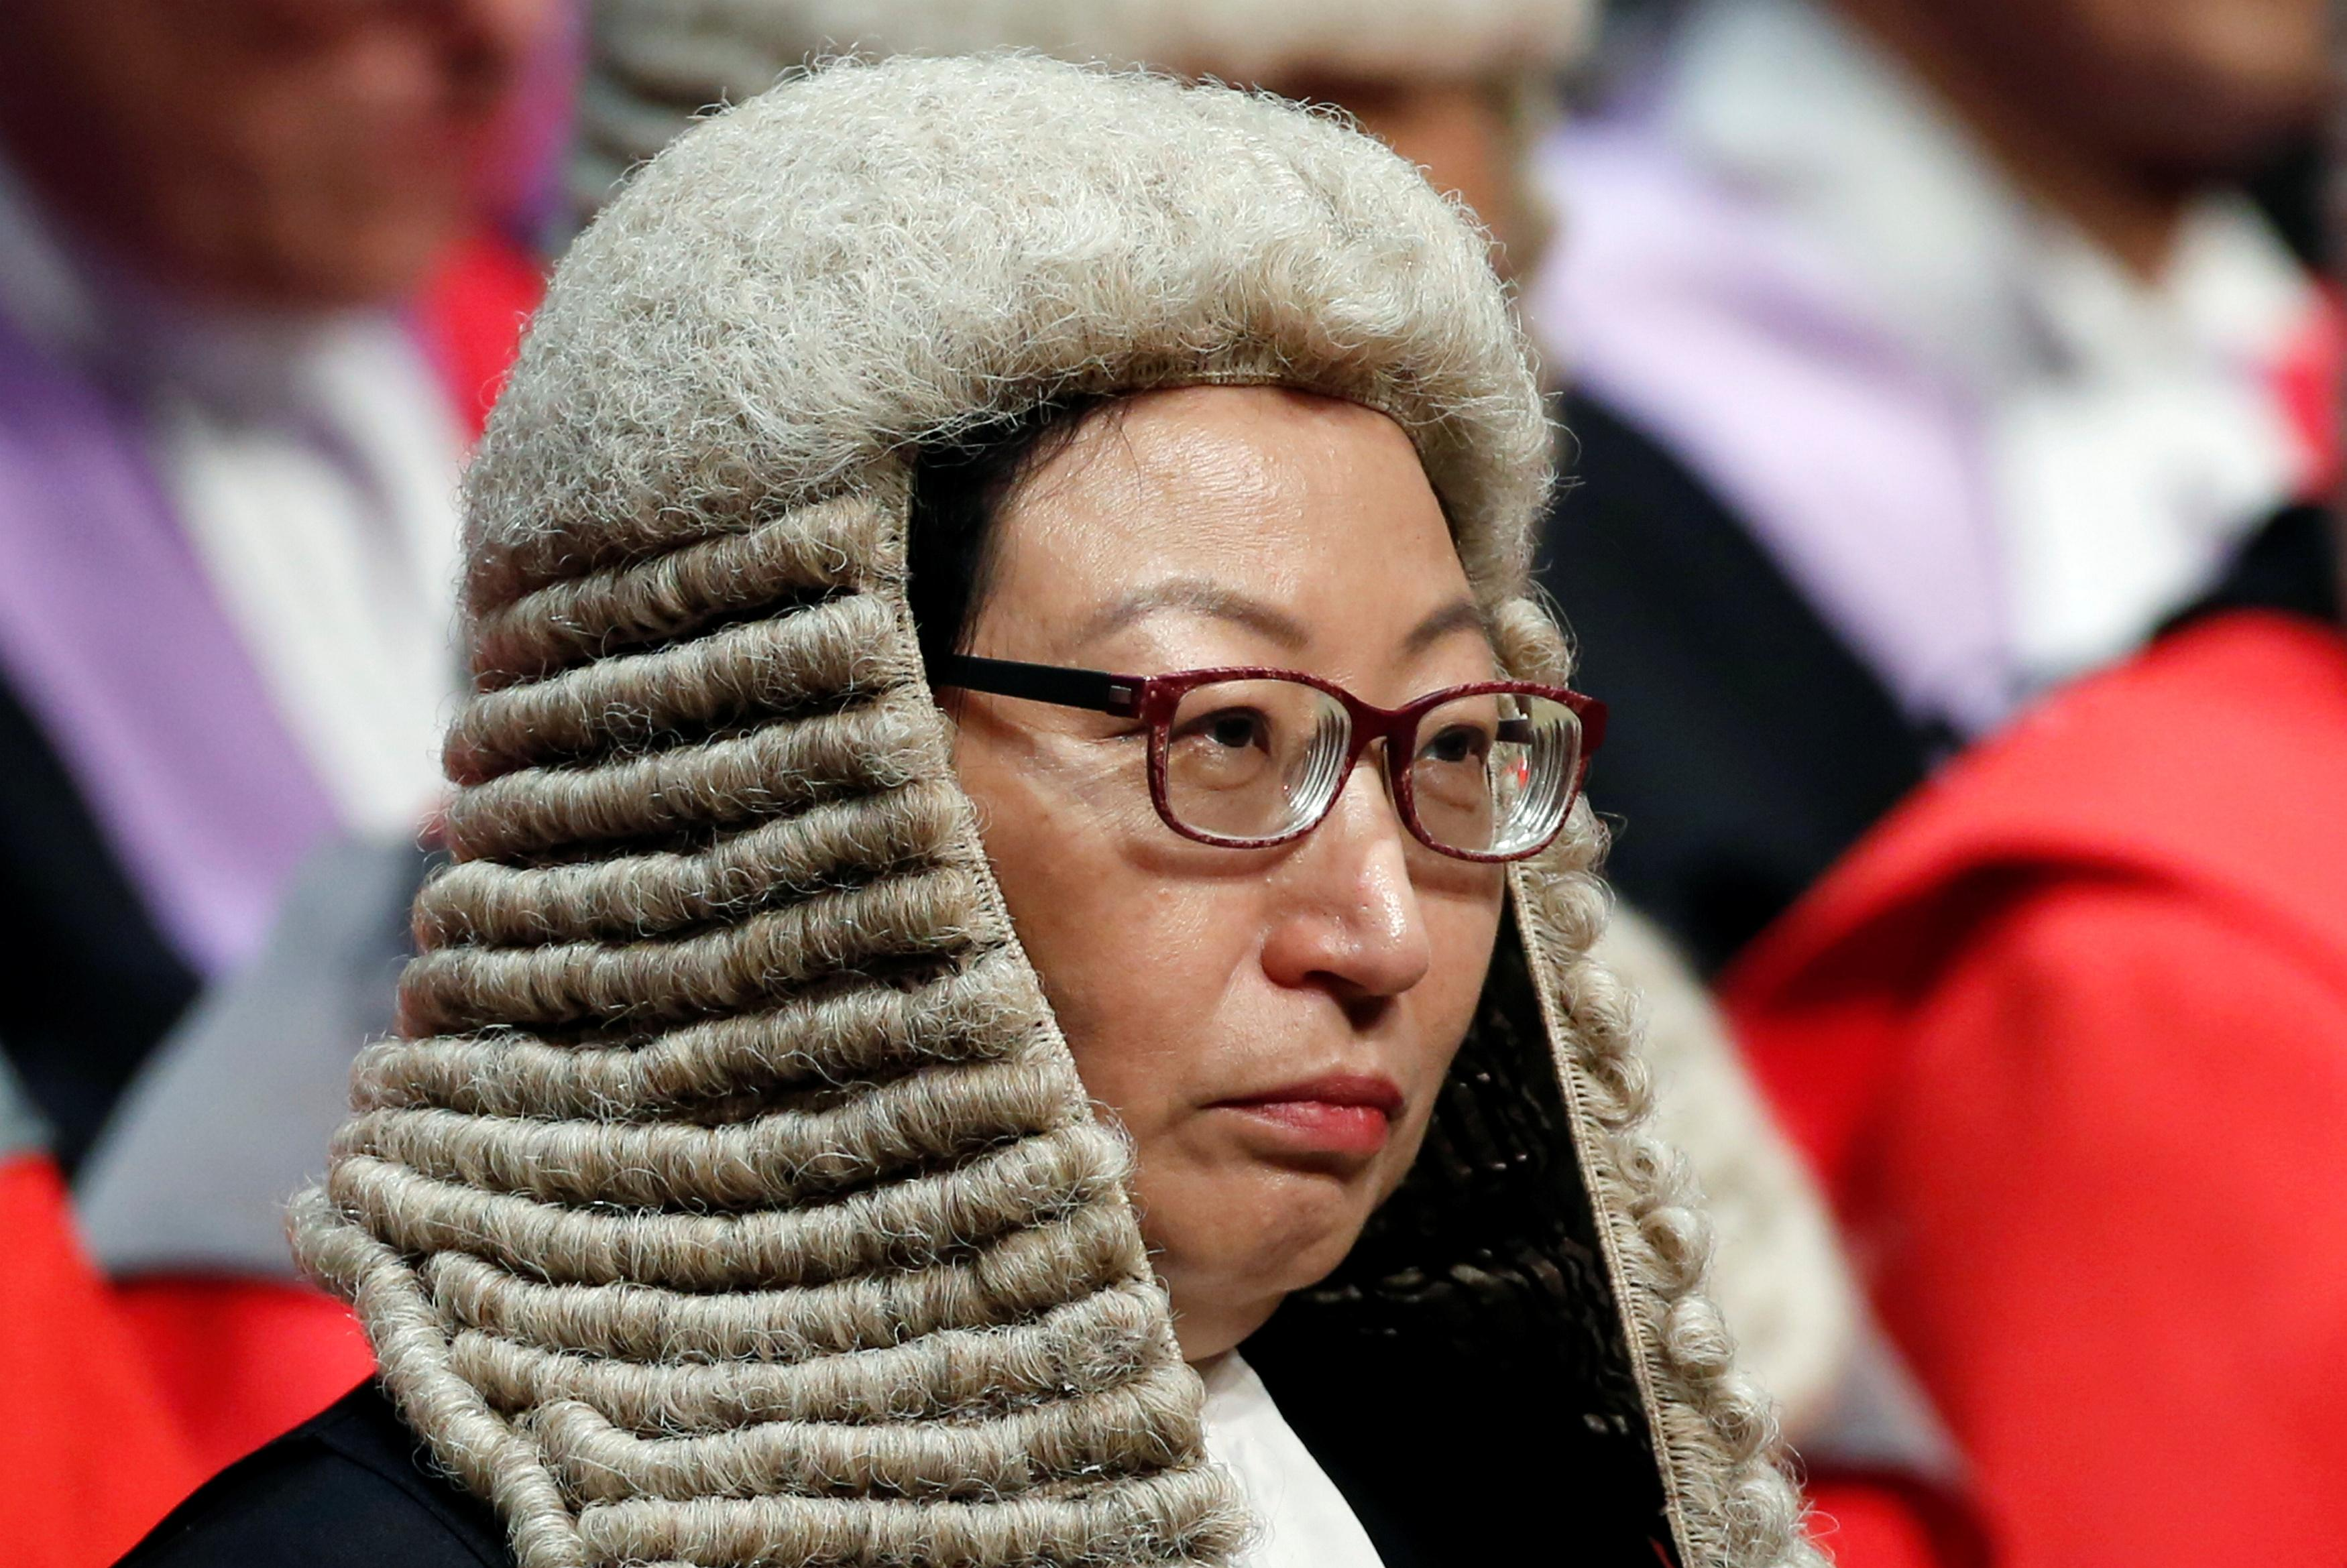 Hong Kong justice secretary due in Beijing on Wednesday amid protests